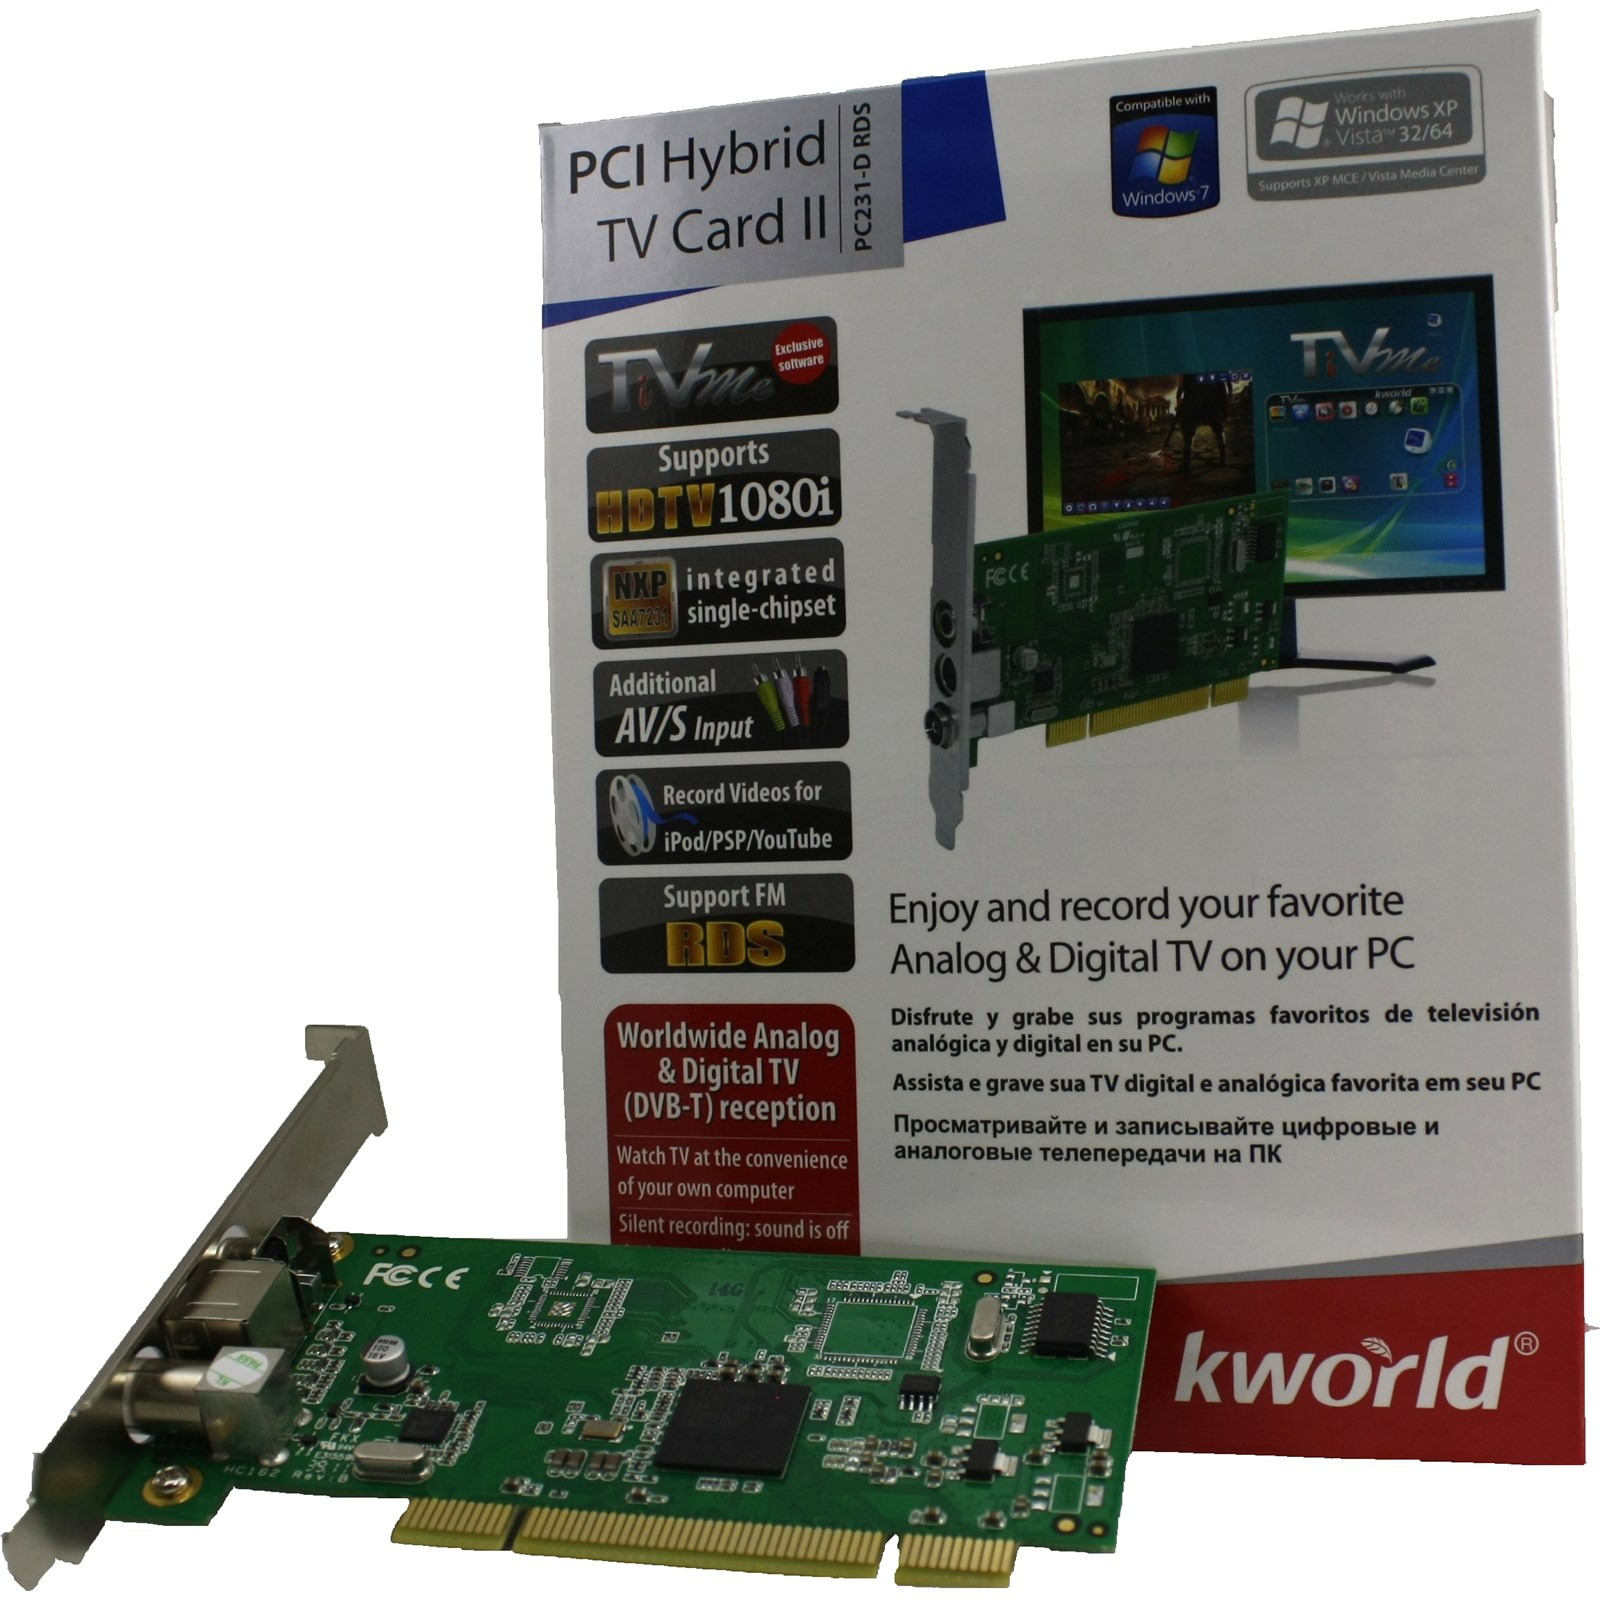 Kworld Pc231 D Rds Pci Hybrid Tv Card Ii Ccl Computers Moouse Toshiba Kw